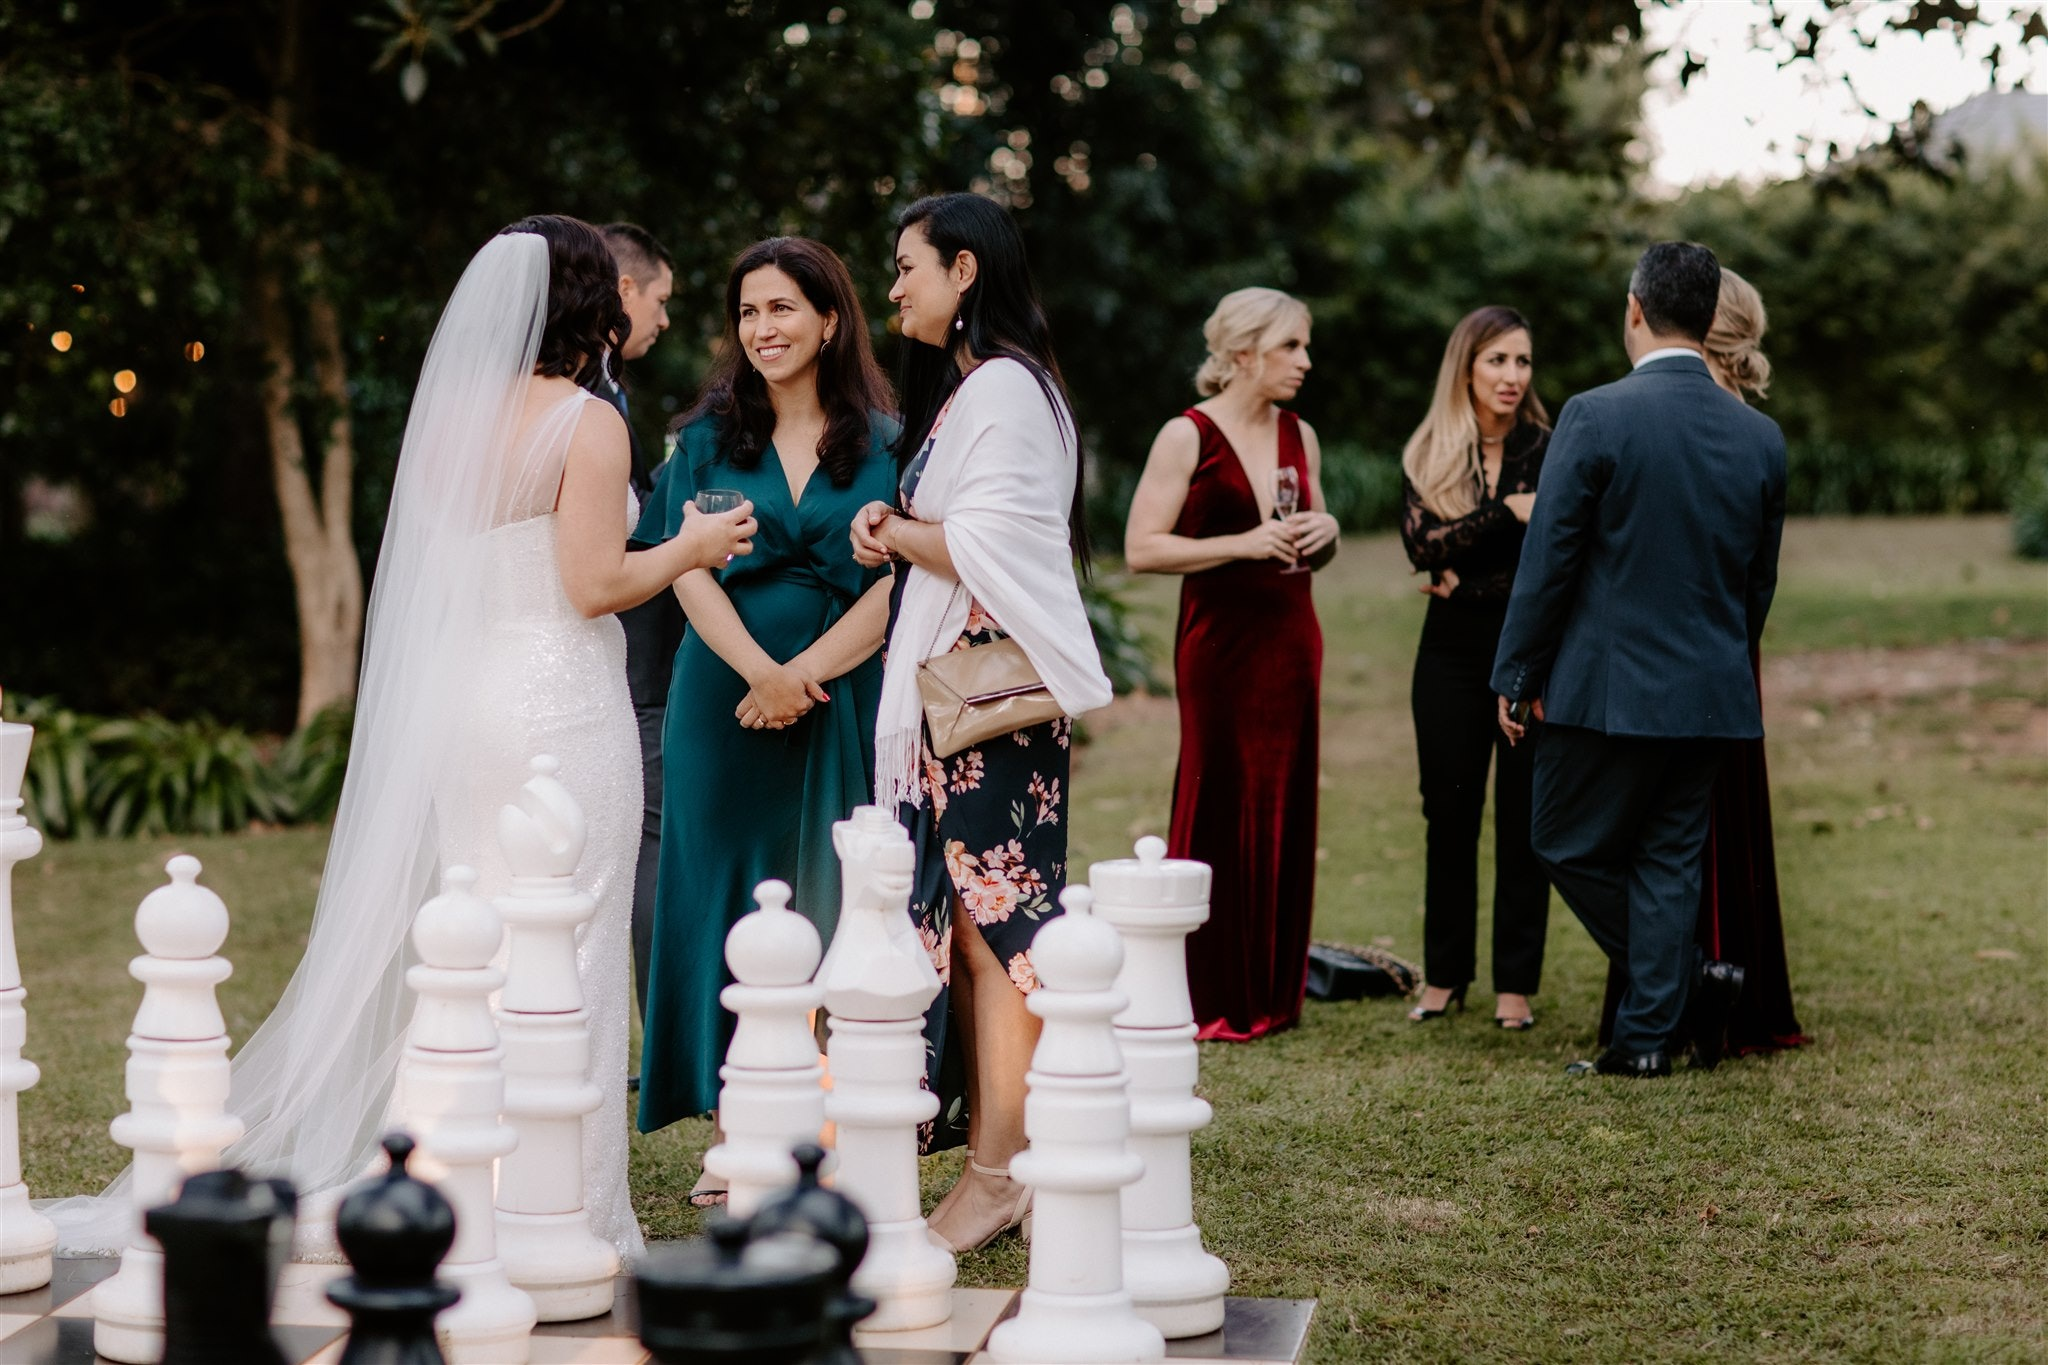 Bride standing near chess board talking to guests